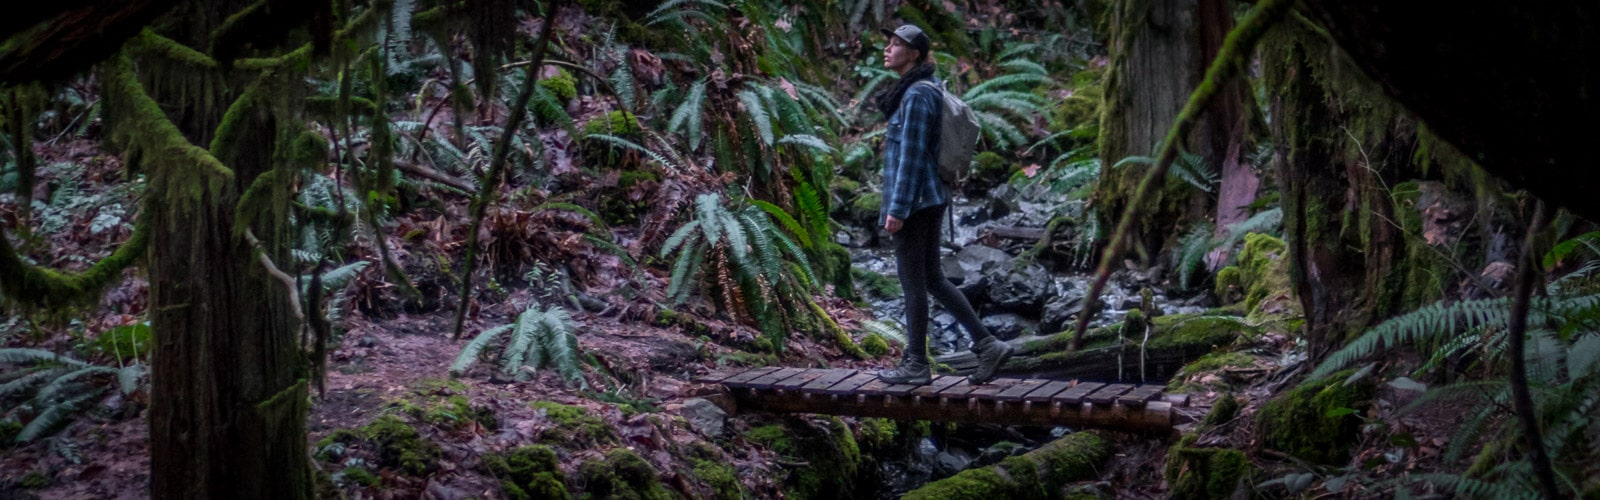 Two Port Alberni Day Hikes You Should Do